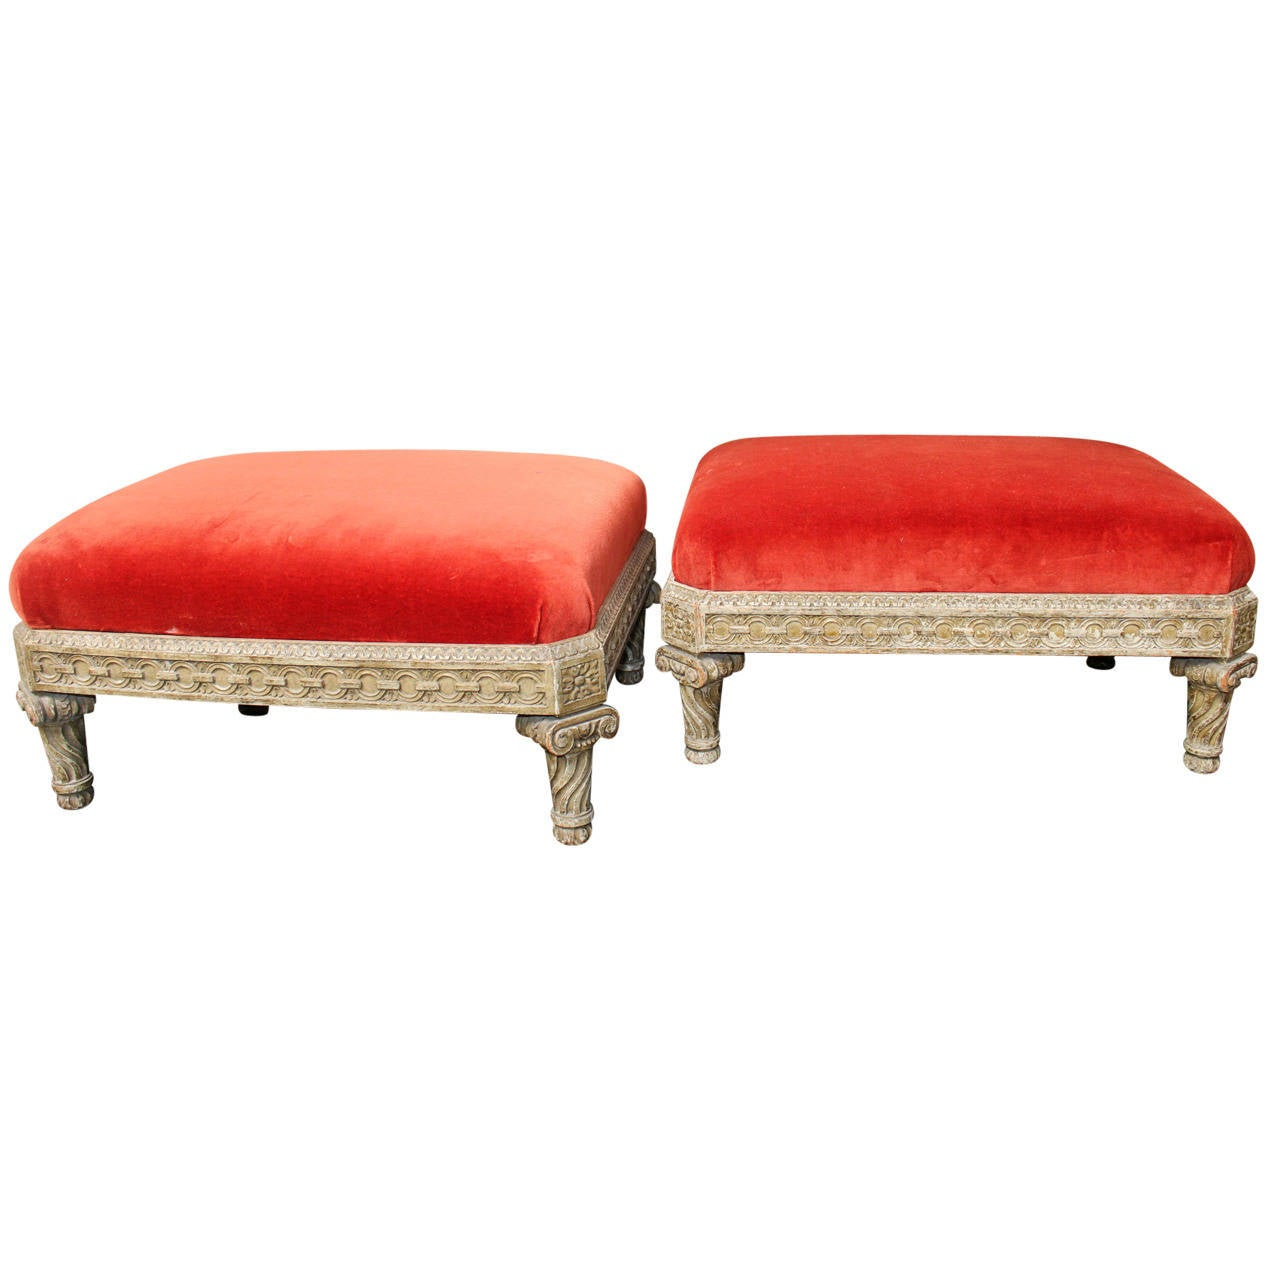 Pair of Beautifully Carved Louis XVI Style Painted Wood Tabourets